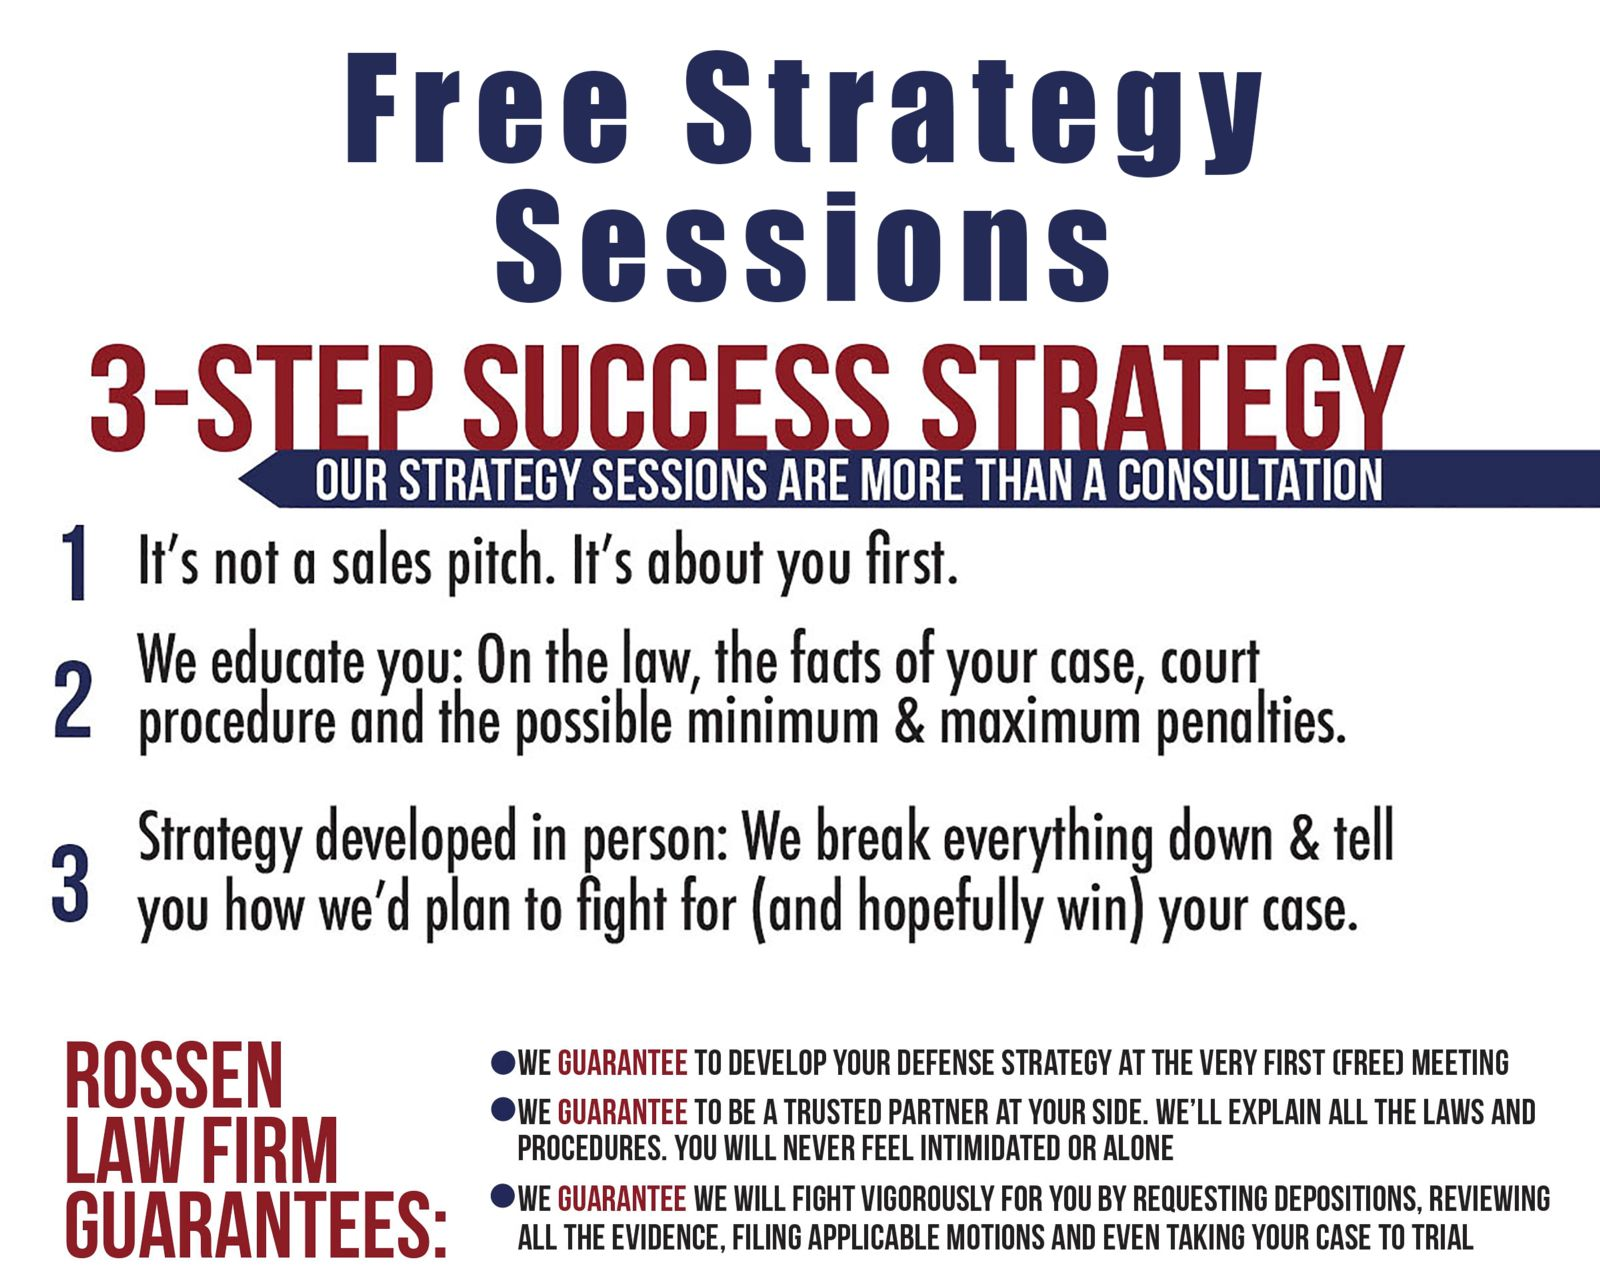 schedule a free strategy session with the best criminal defense attorneys in Fort Lauderdale